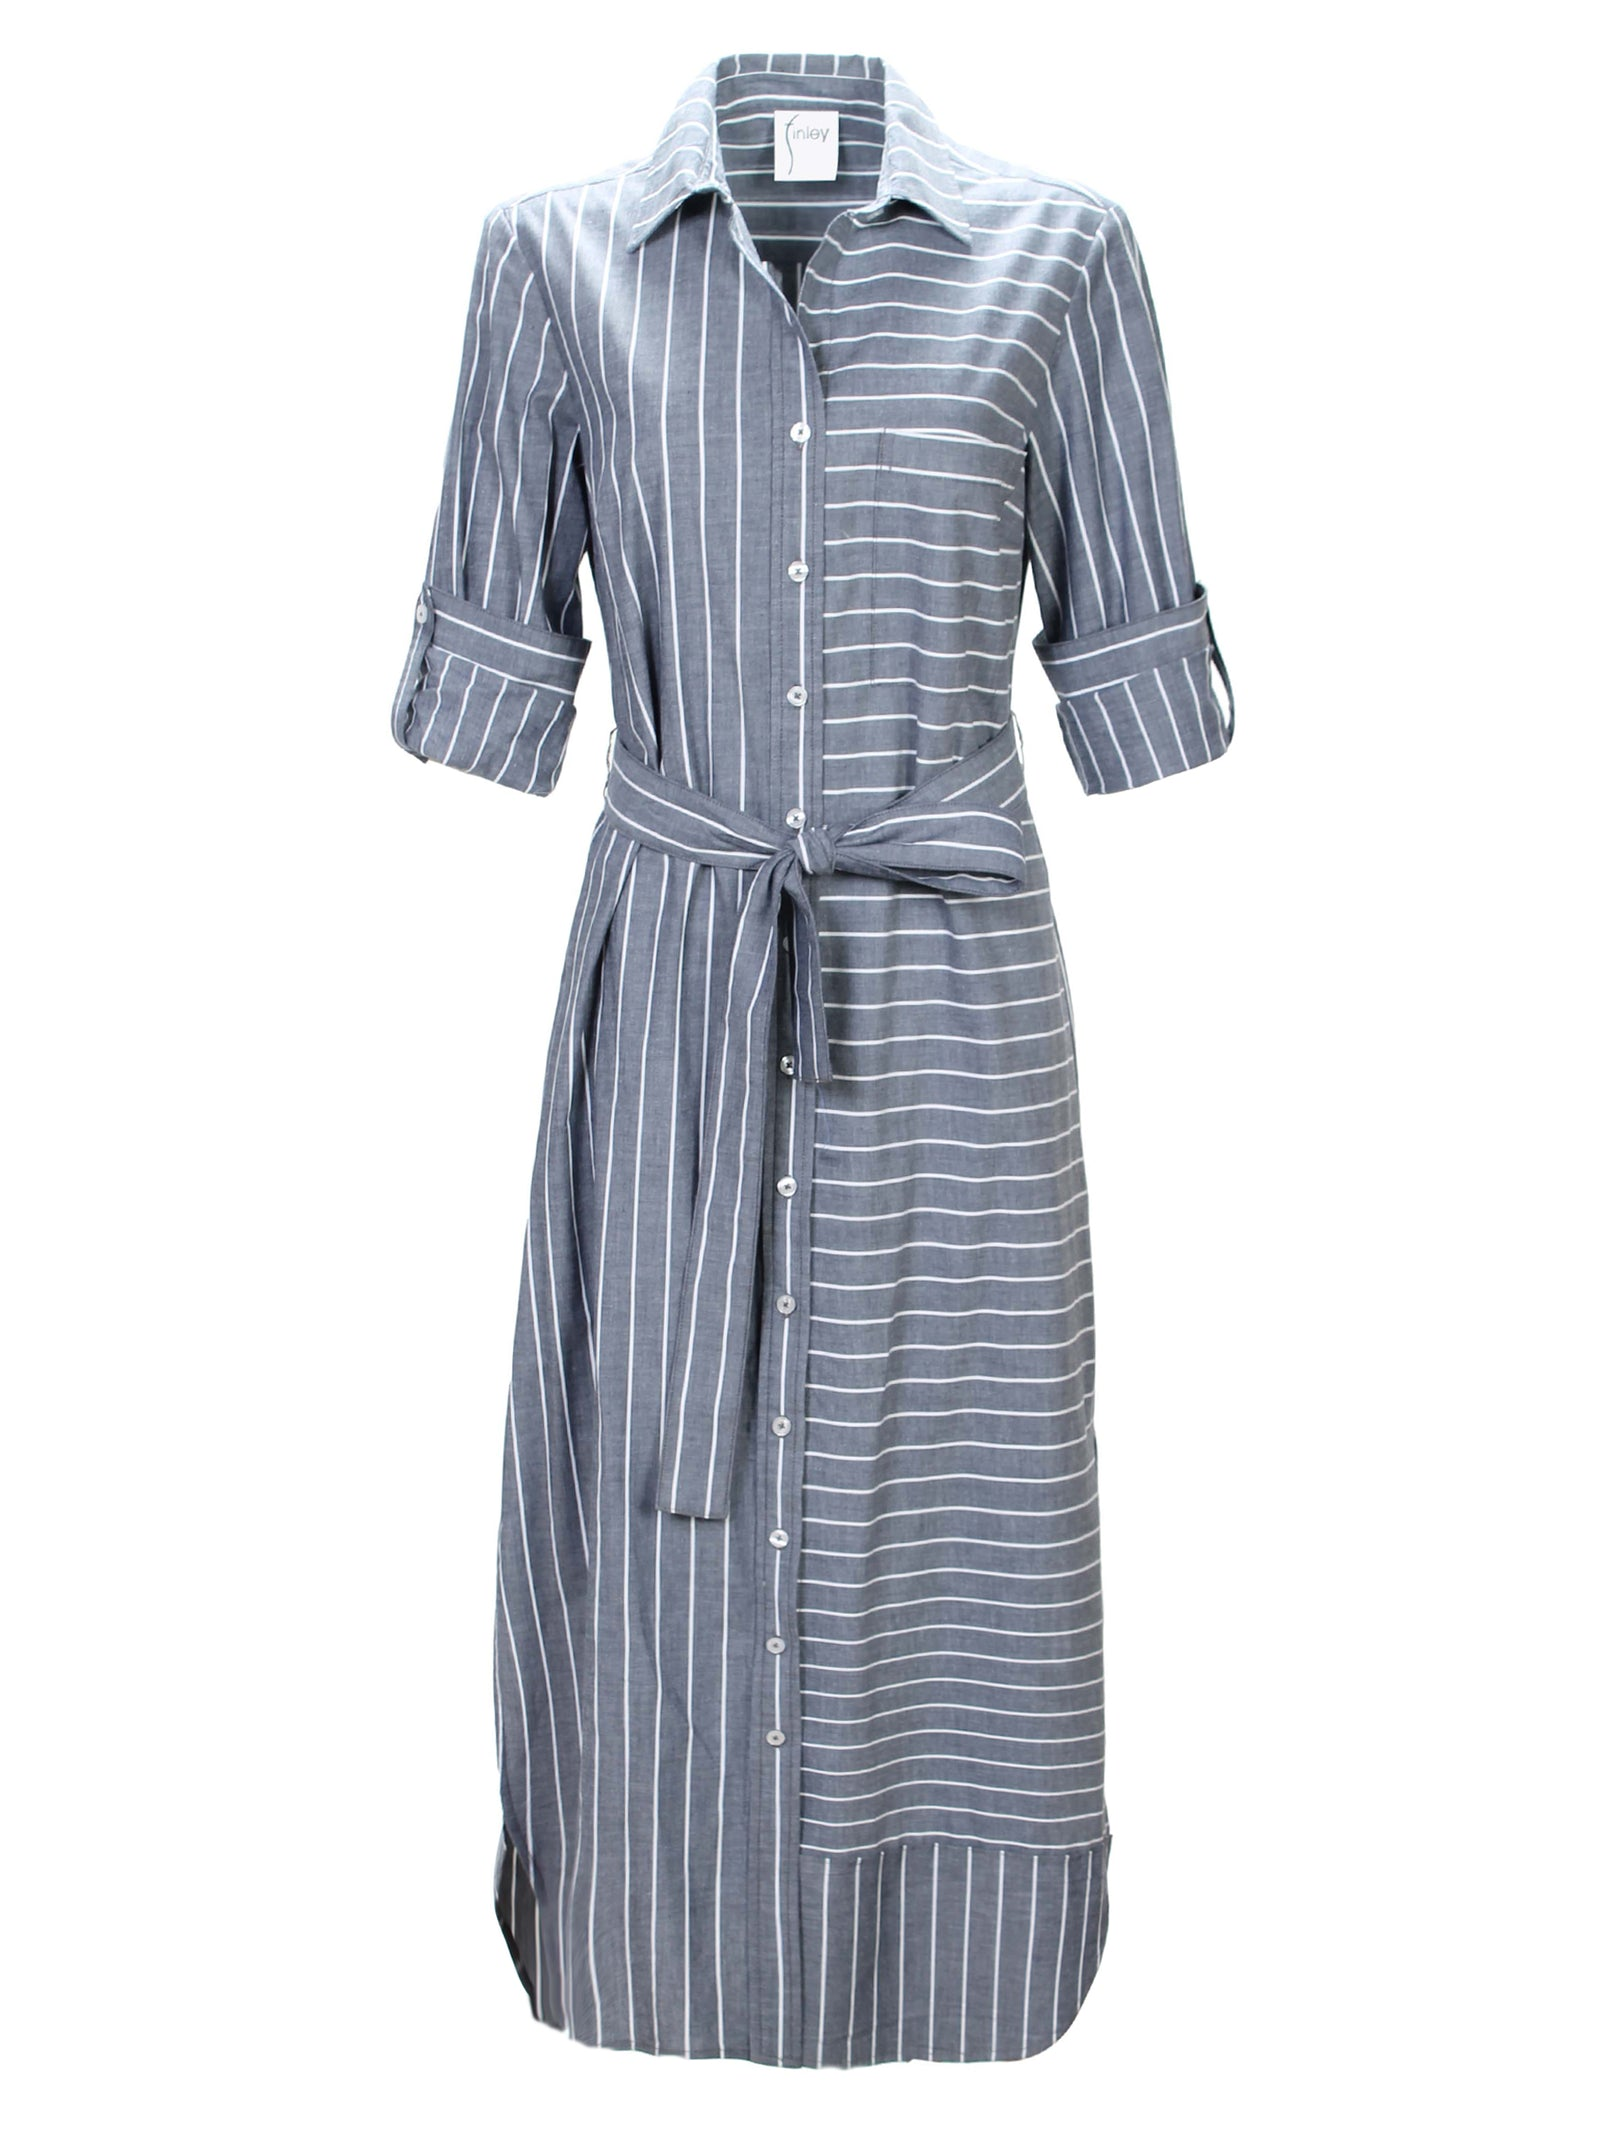 643a9a5386cb6 O'Brian Long Shirtdress Charcoal Stripe ...